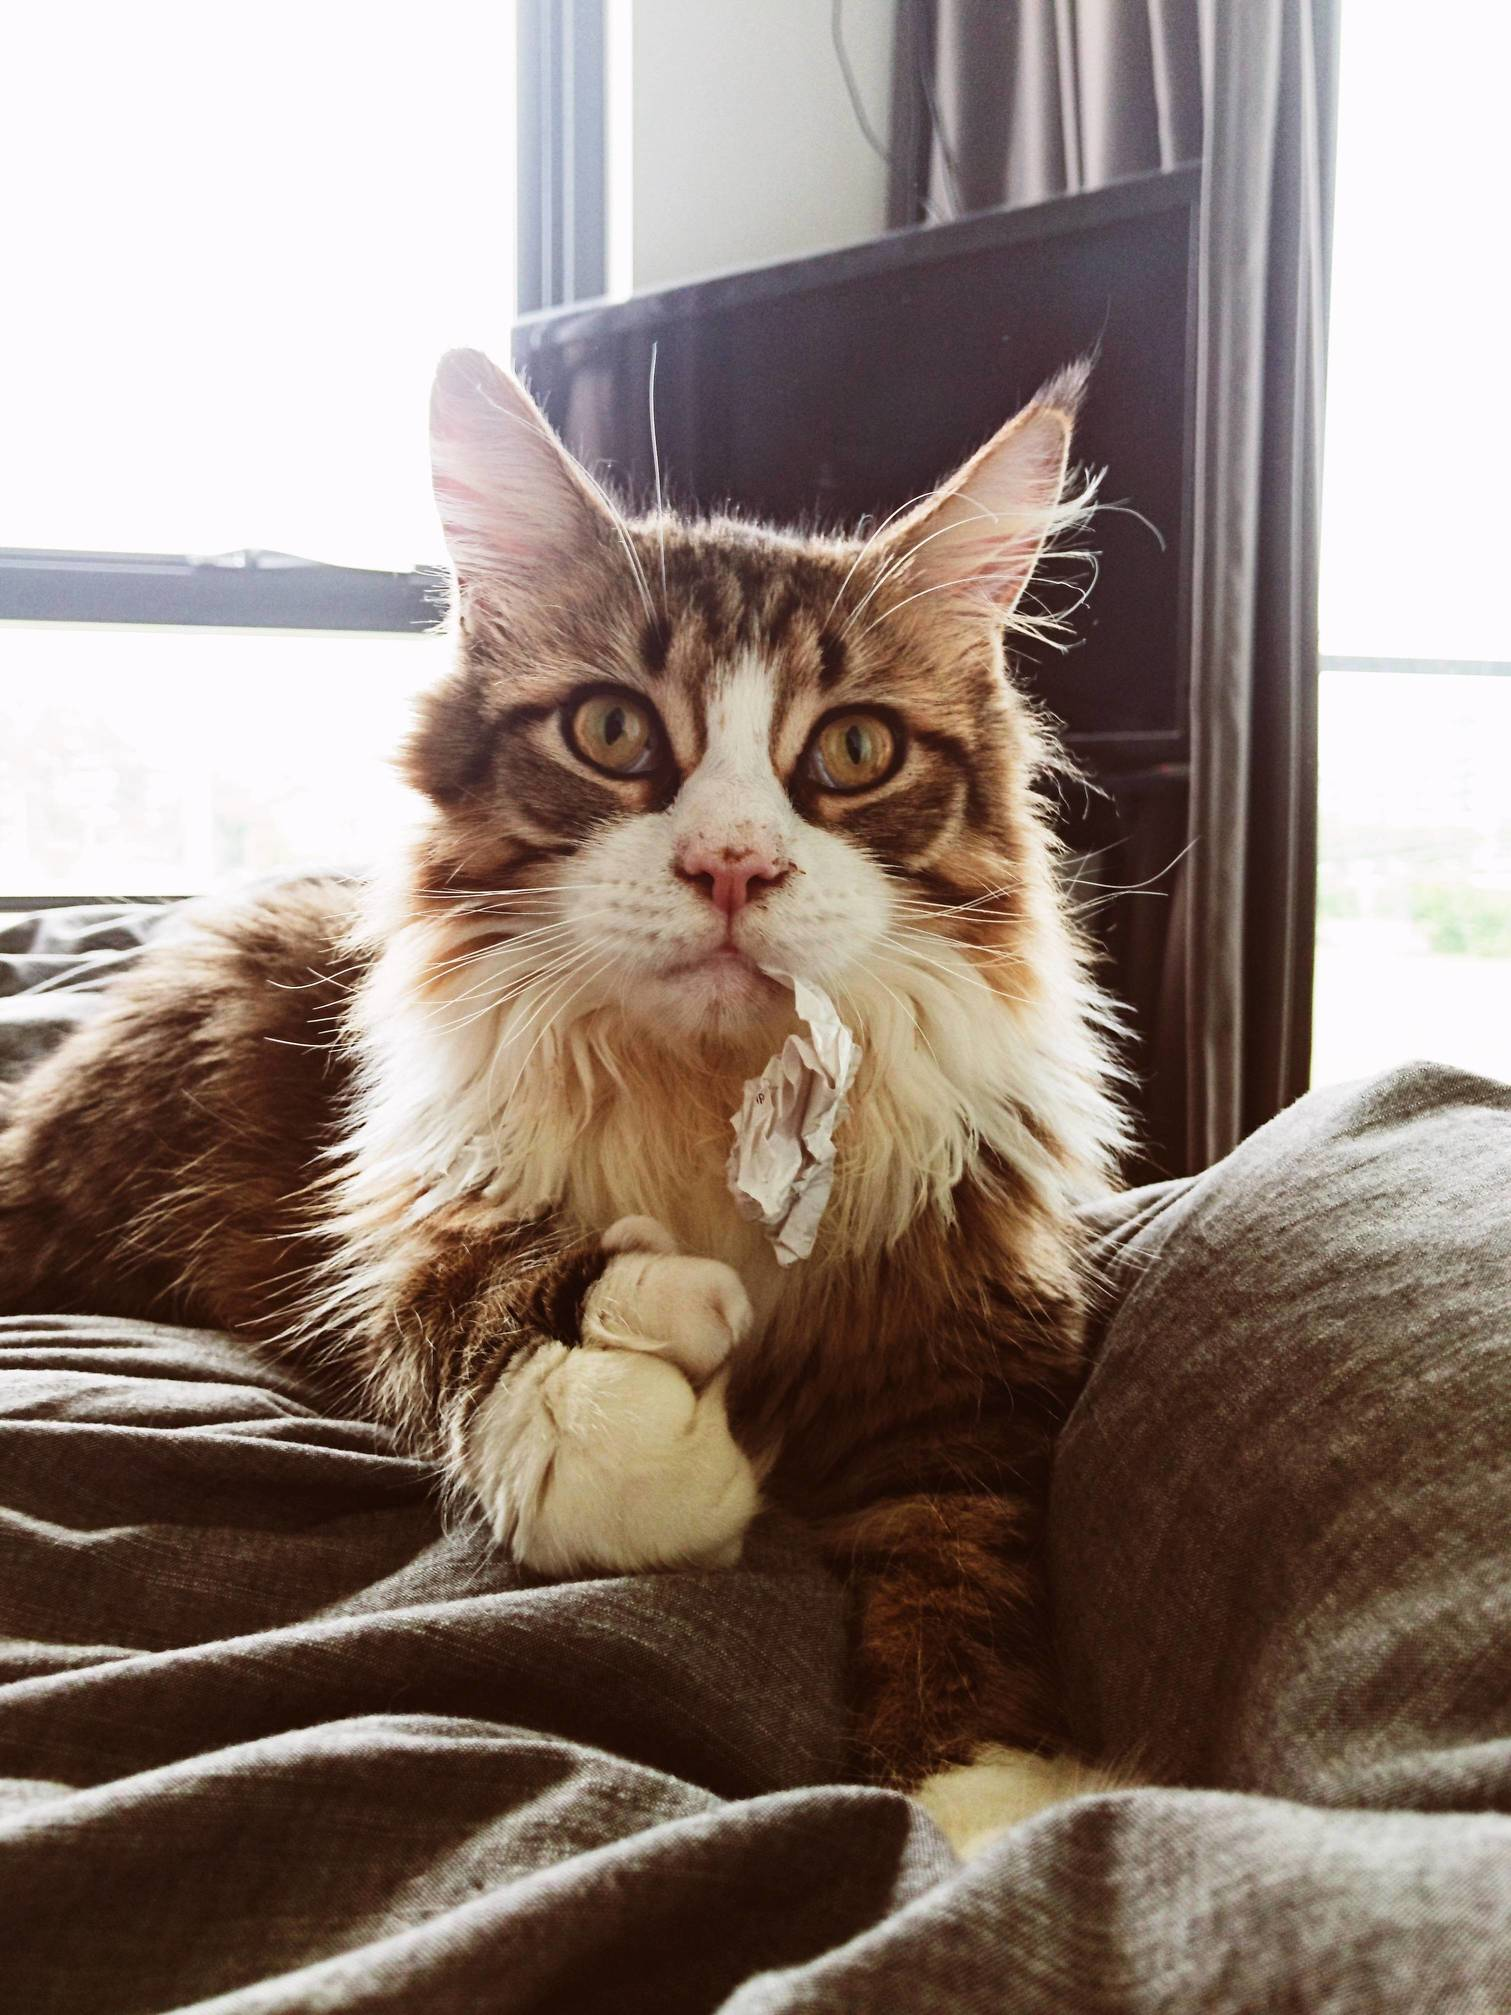 Queequeg jumped on the bed with a receipt caught in his tooth.